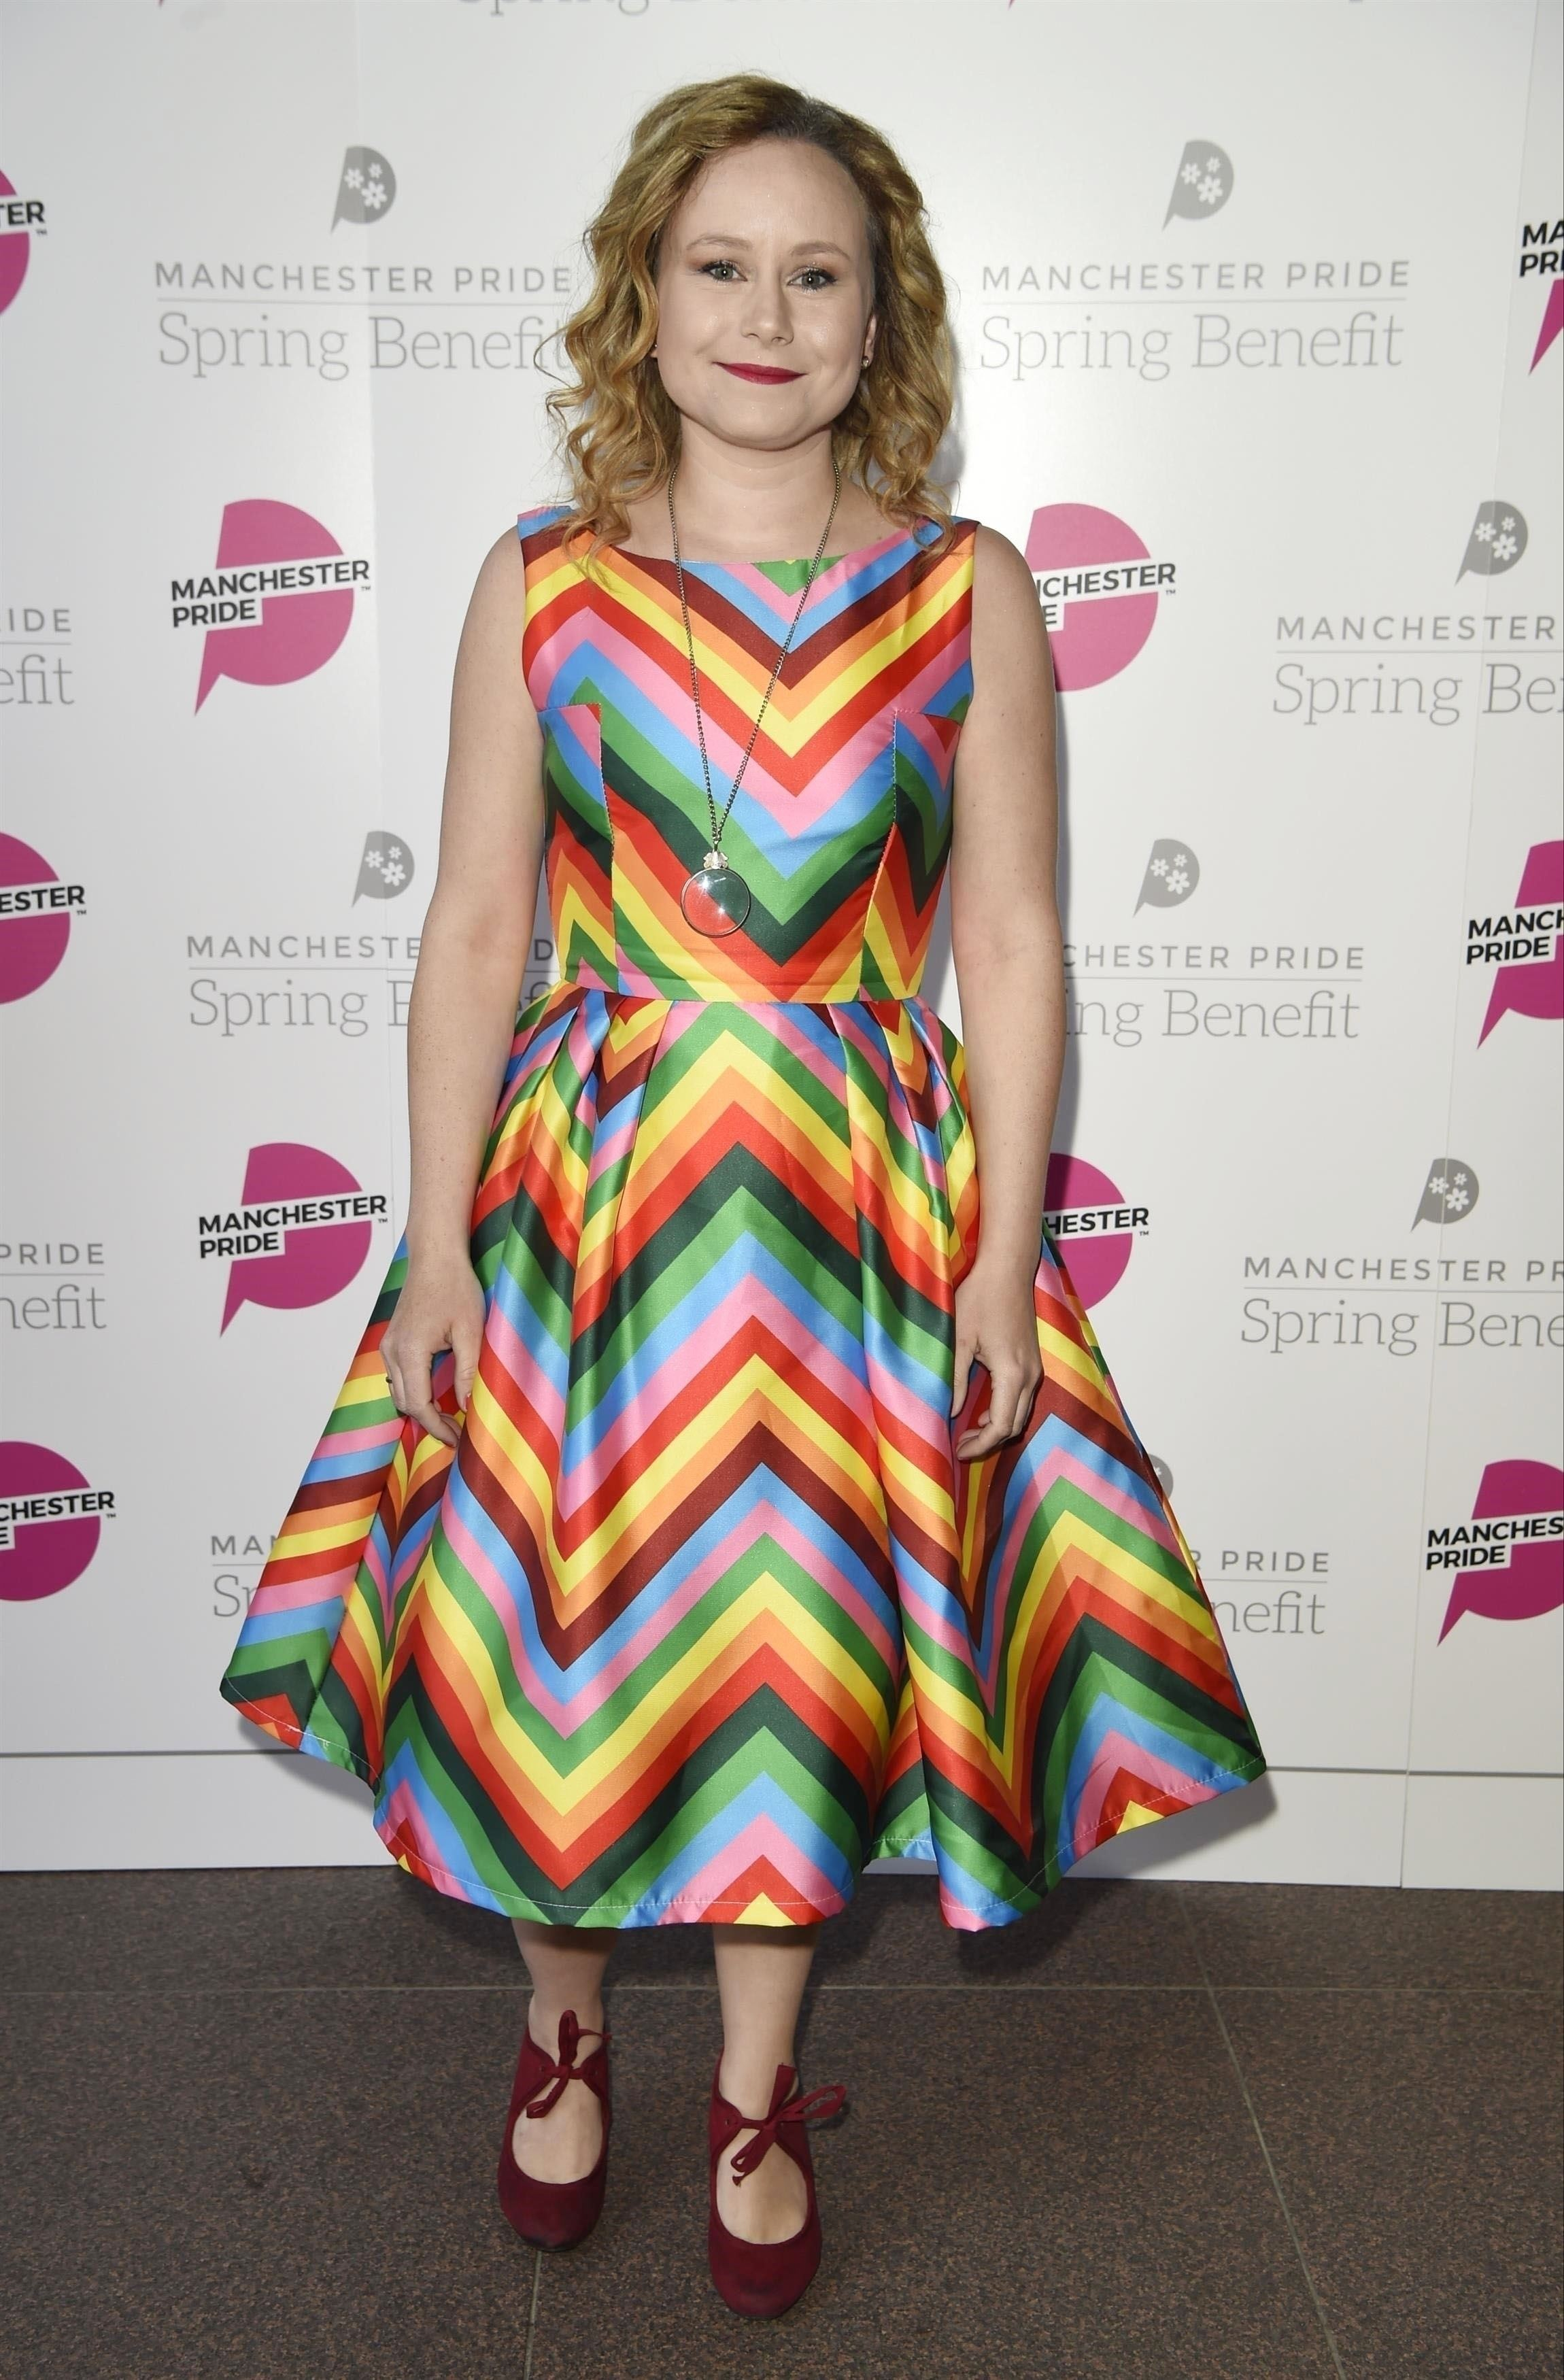 Manchester Pride Spring Benefit Charity Ball